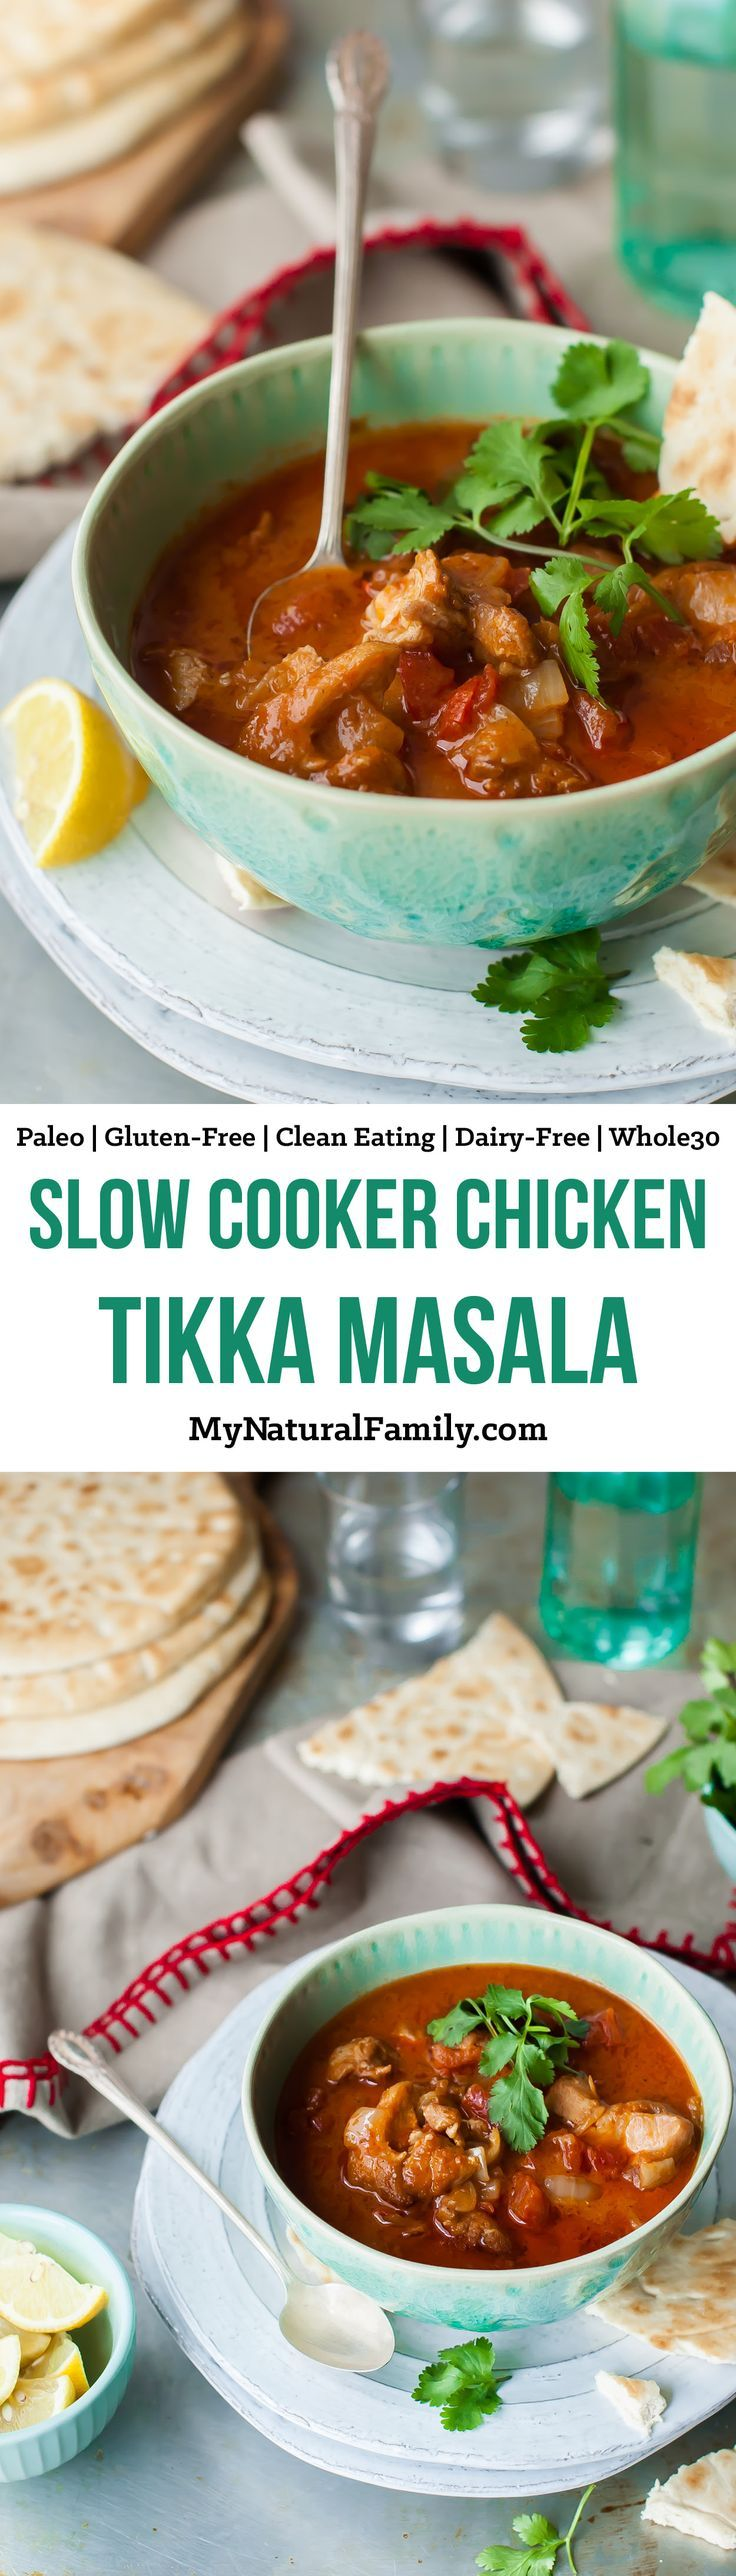 Slow Cooker Chicken Tikka Masala Recipe {Paleo, Clean, Gluten Free, Dairy Free, Whole30} - this is so easy with only a few ingredients and it tastes like I was cooking in the kitchen for half the day.